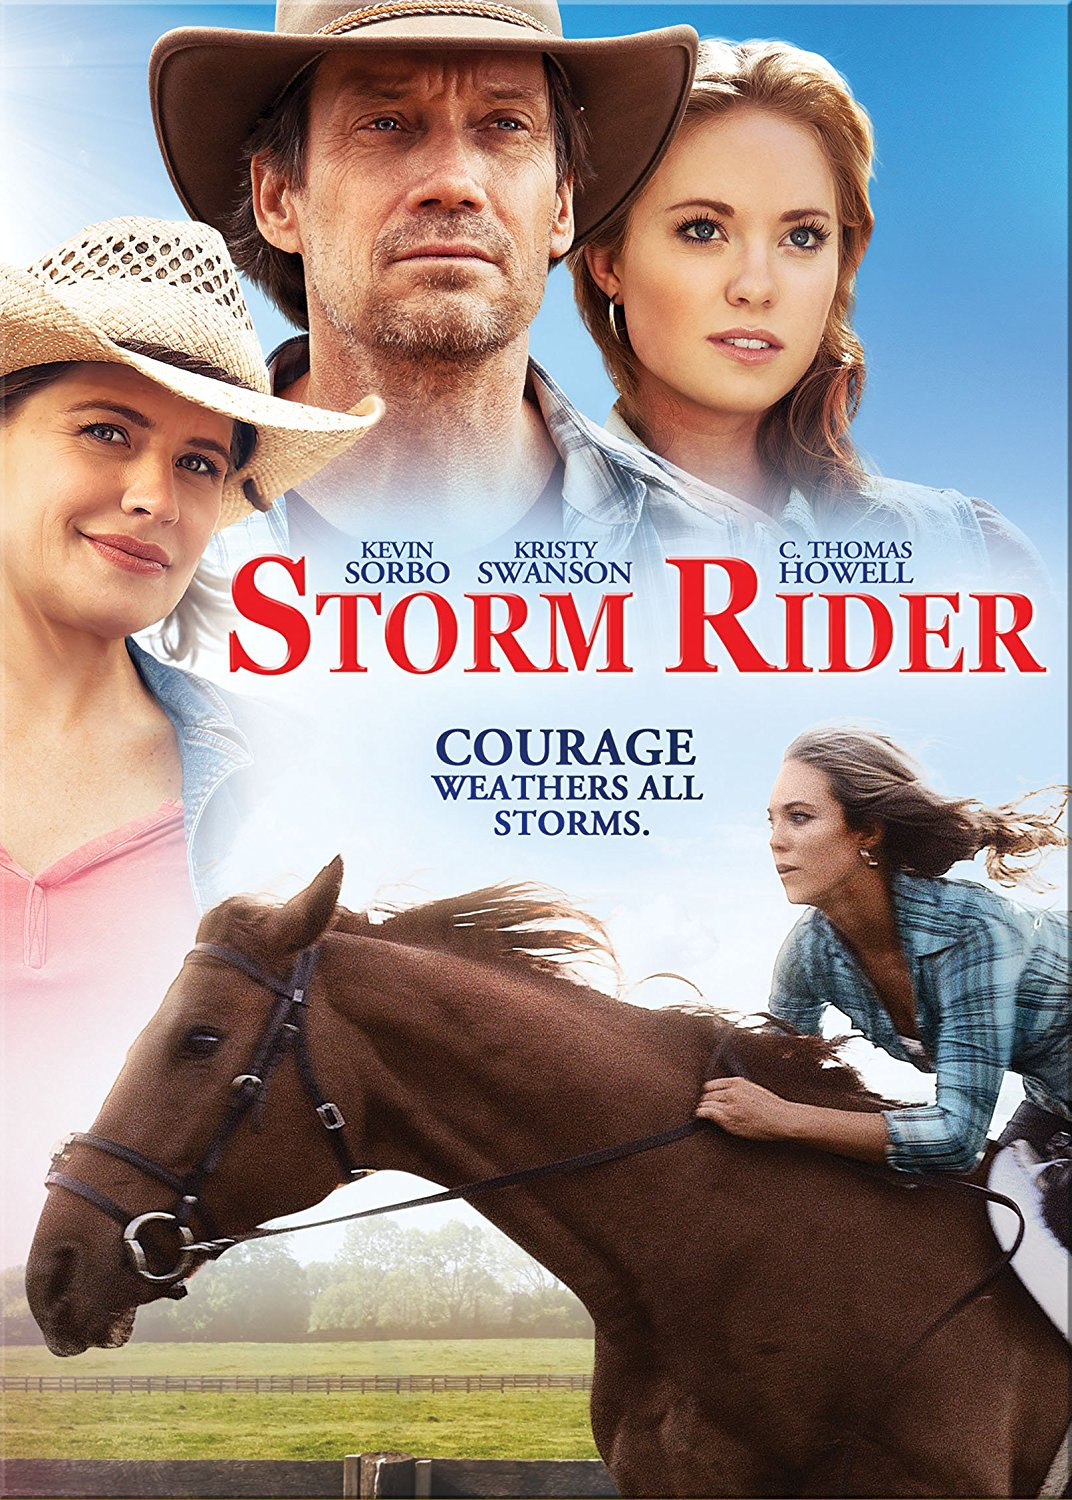 Storm Rider, clean inspiring movie on Netflix